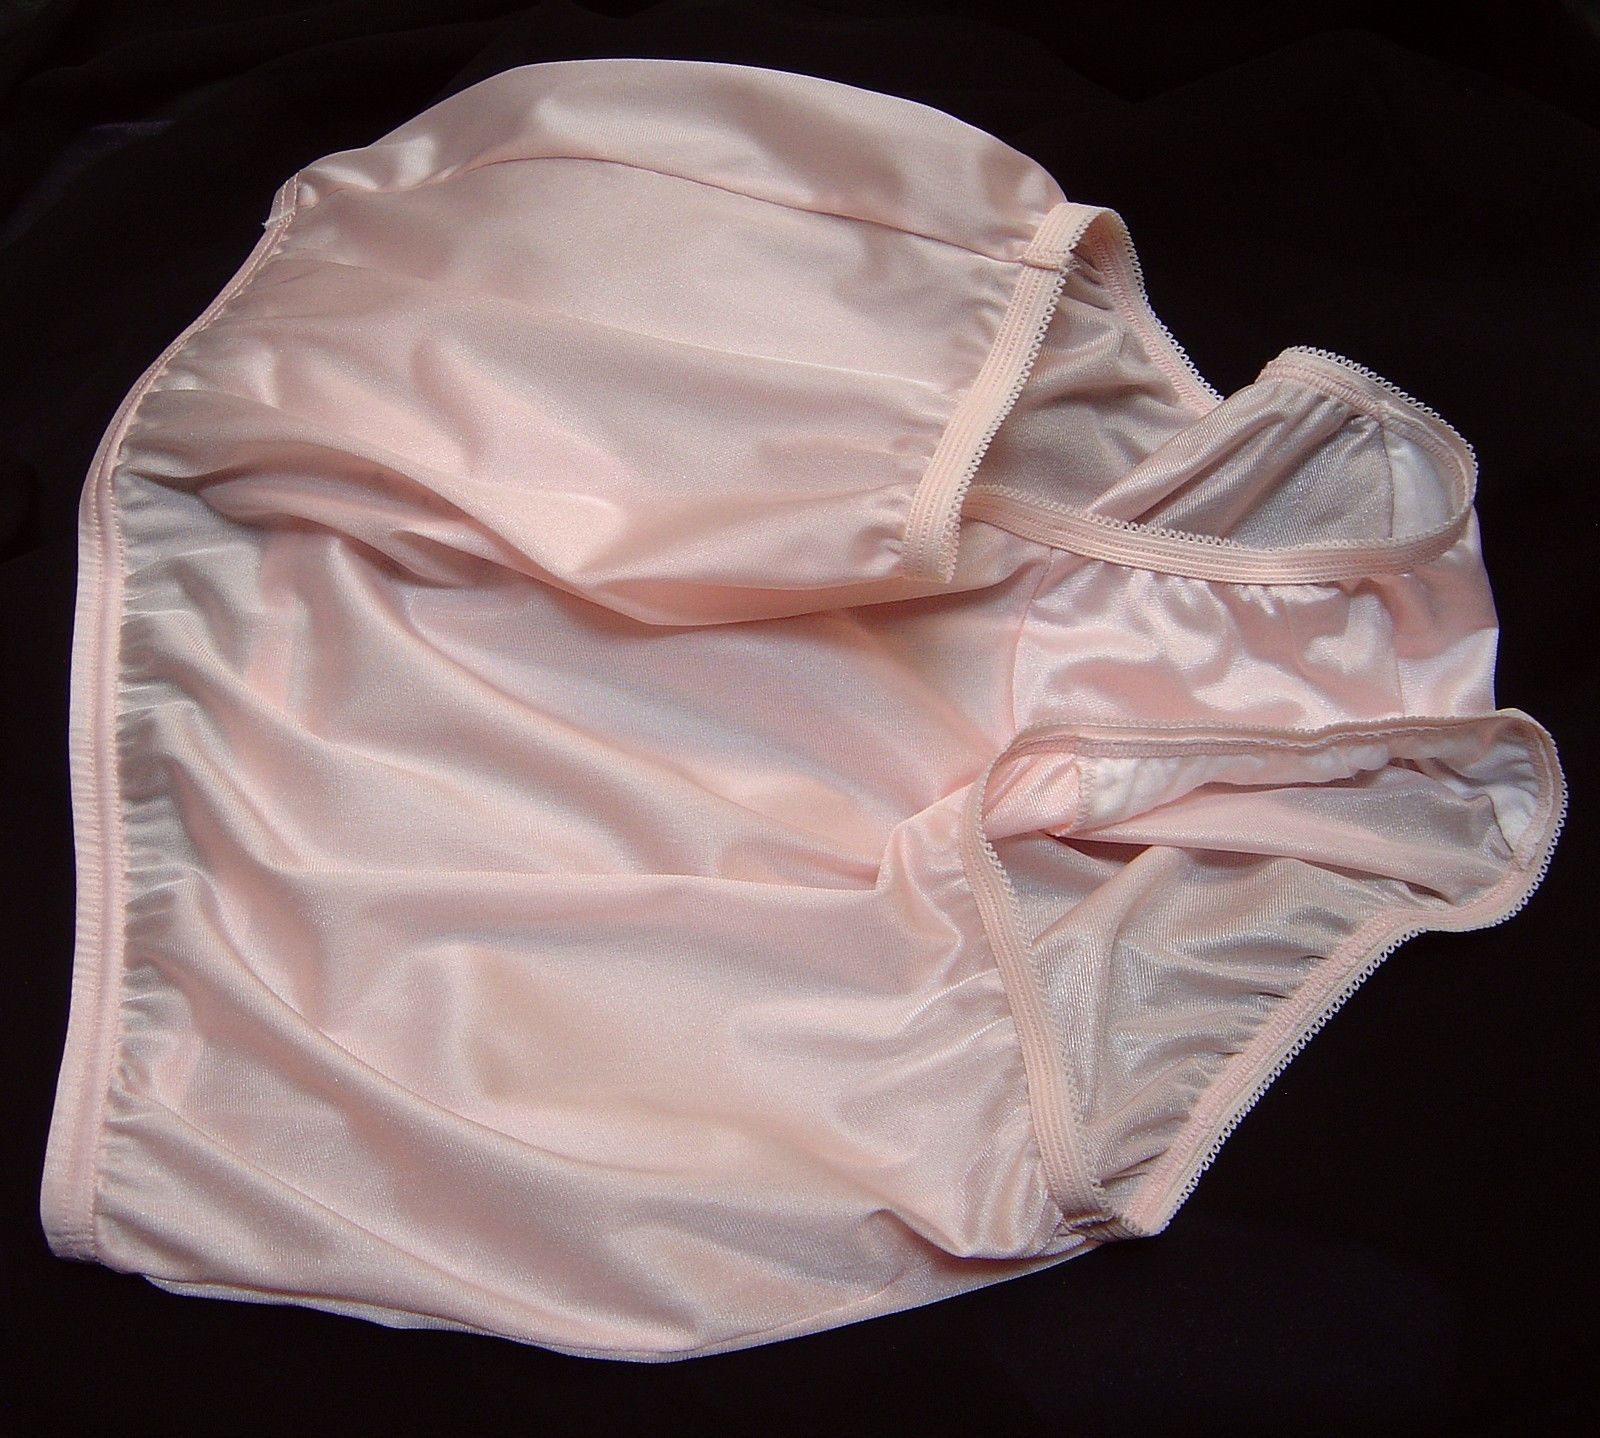 This Is Where It All Started For Me Yes Things To Wear Granny Panties Vanity Fair Pretty